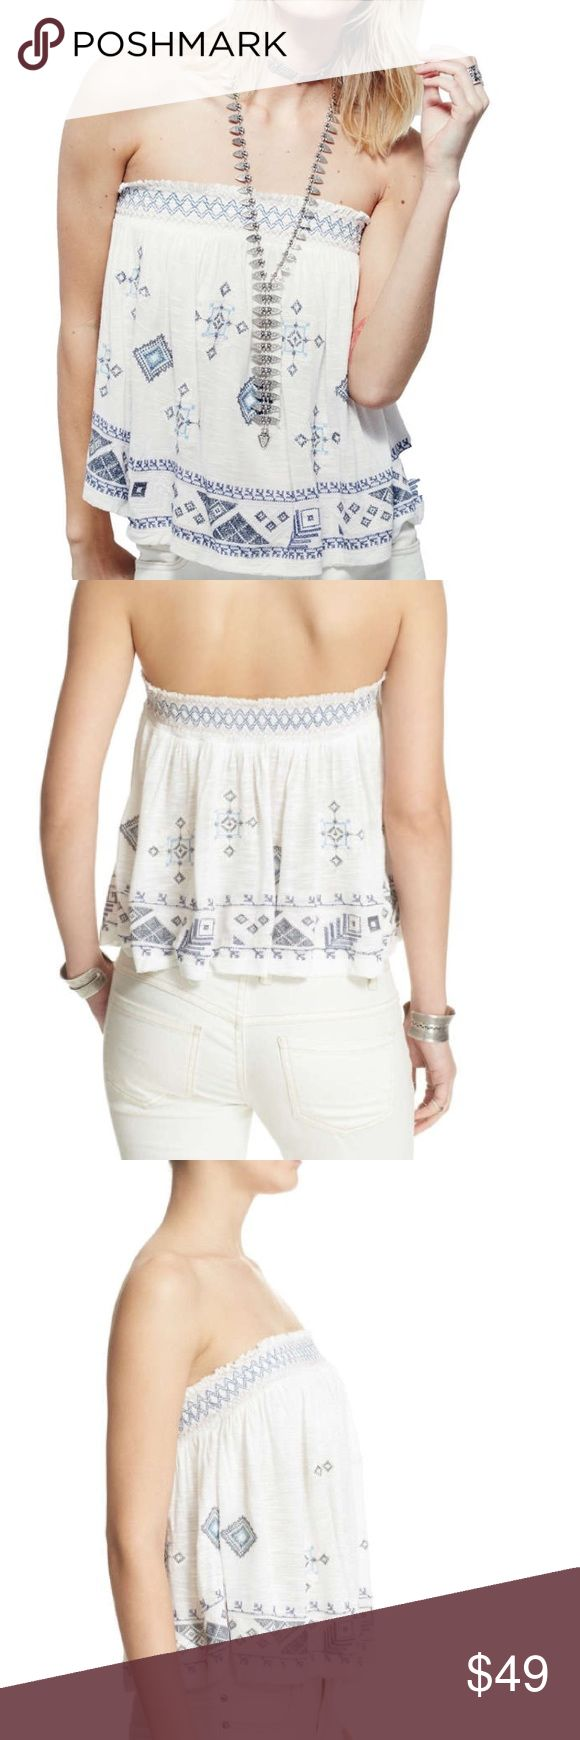 You got it bad strapless top by Free People flash sale💗💕💜This top is true to size. The large fits me as a 12 and would fit a 14. Extremely soft lining over the chest in a soft tricot fabric. The embroidery is soft as well and so pretty. This is a great top with denim shorts and sandals to throw in your weekend getaway bag💜💕🌈. No trades. Free People Tops